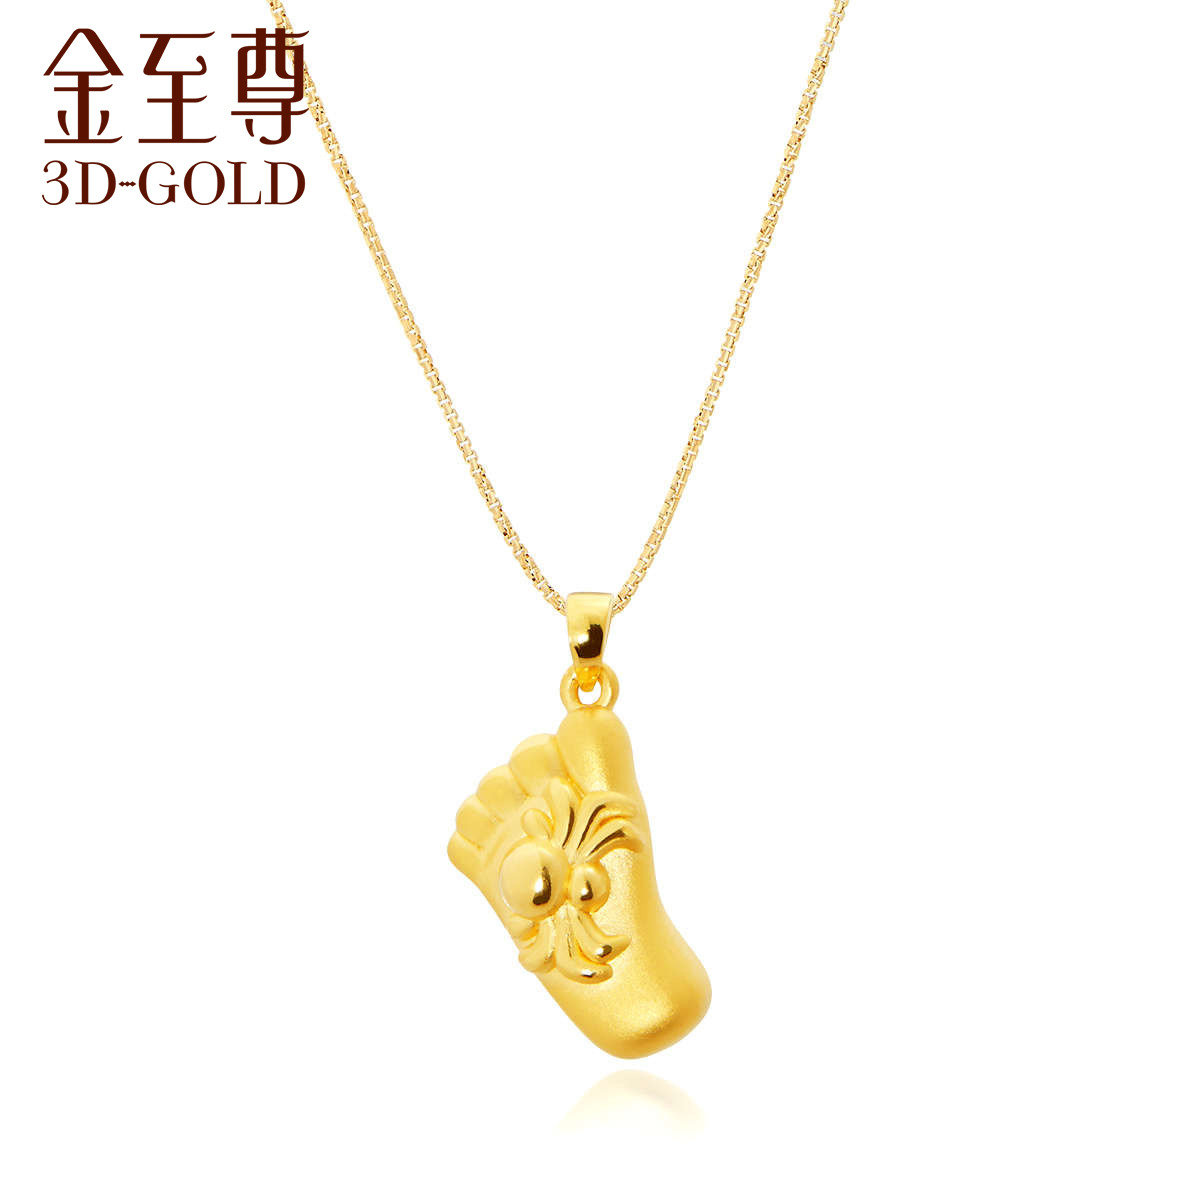 Au999 Gold electroformed Pendant Collection (Necklace not included)